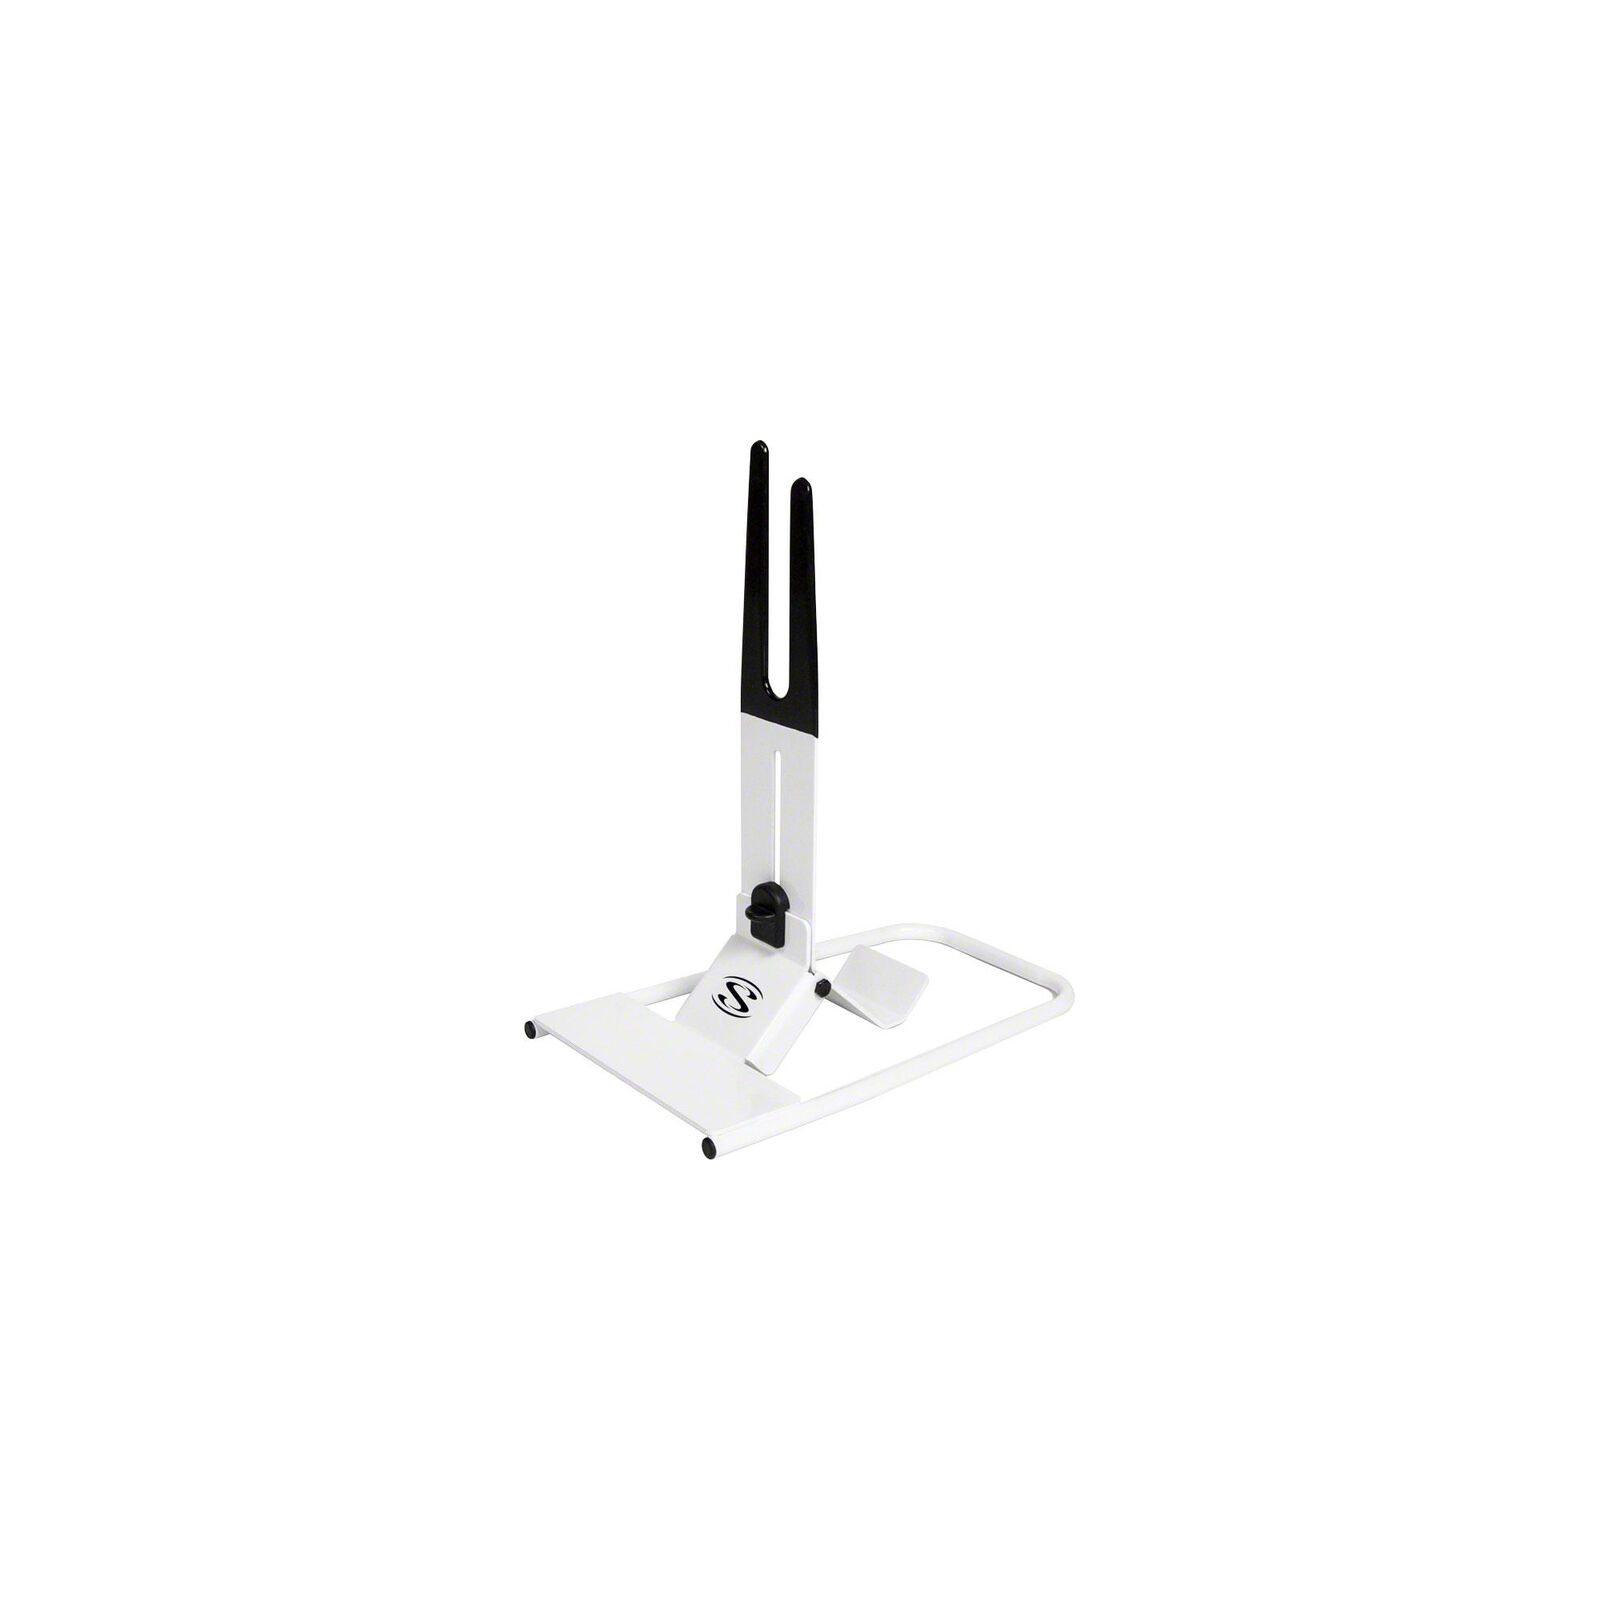 Saris The Boss Folding Bike Display Stand  White